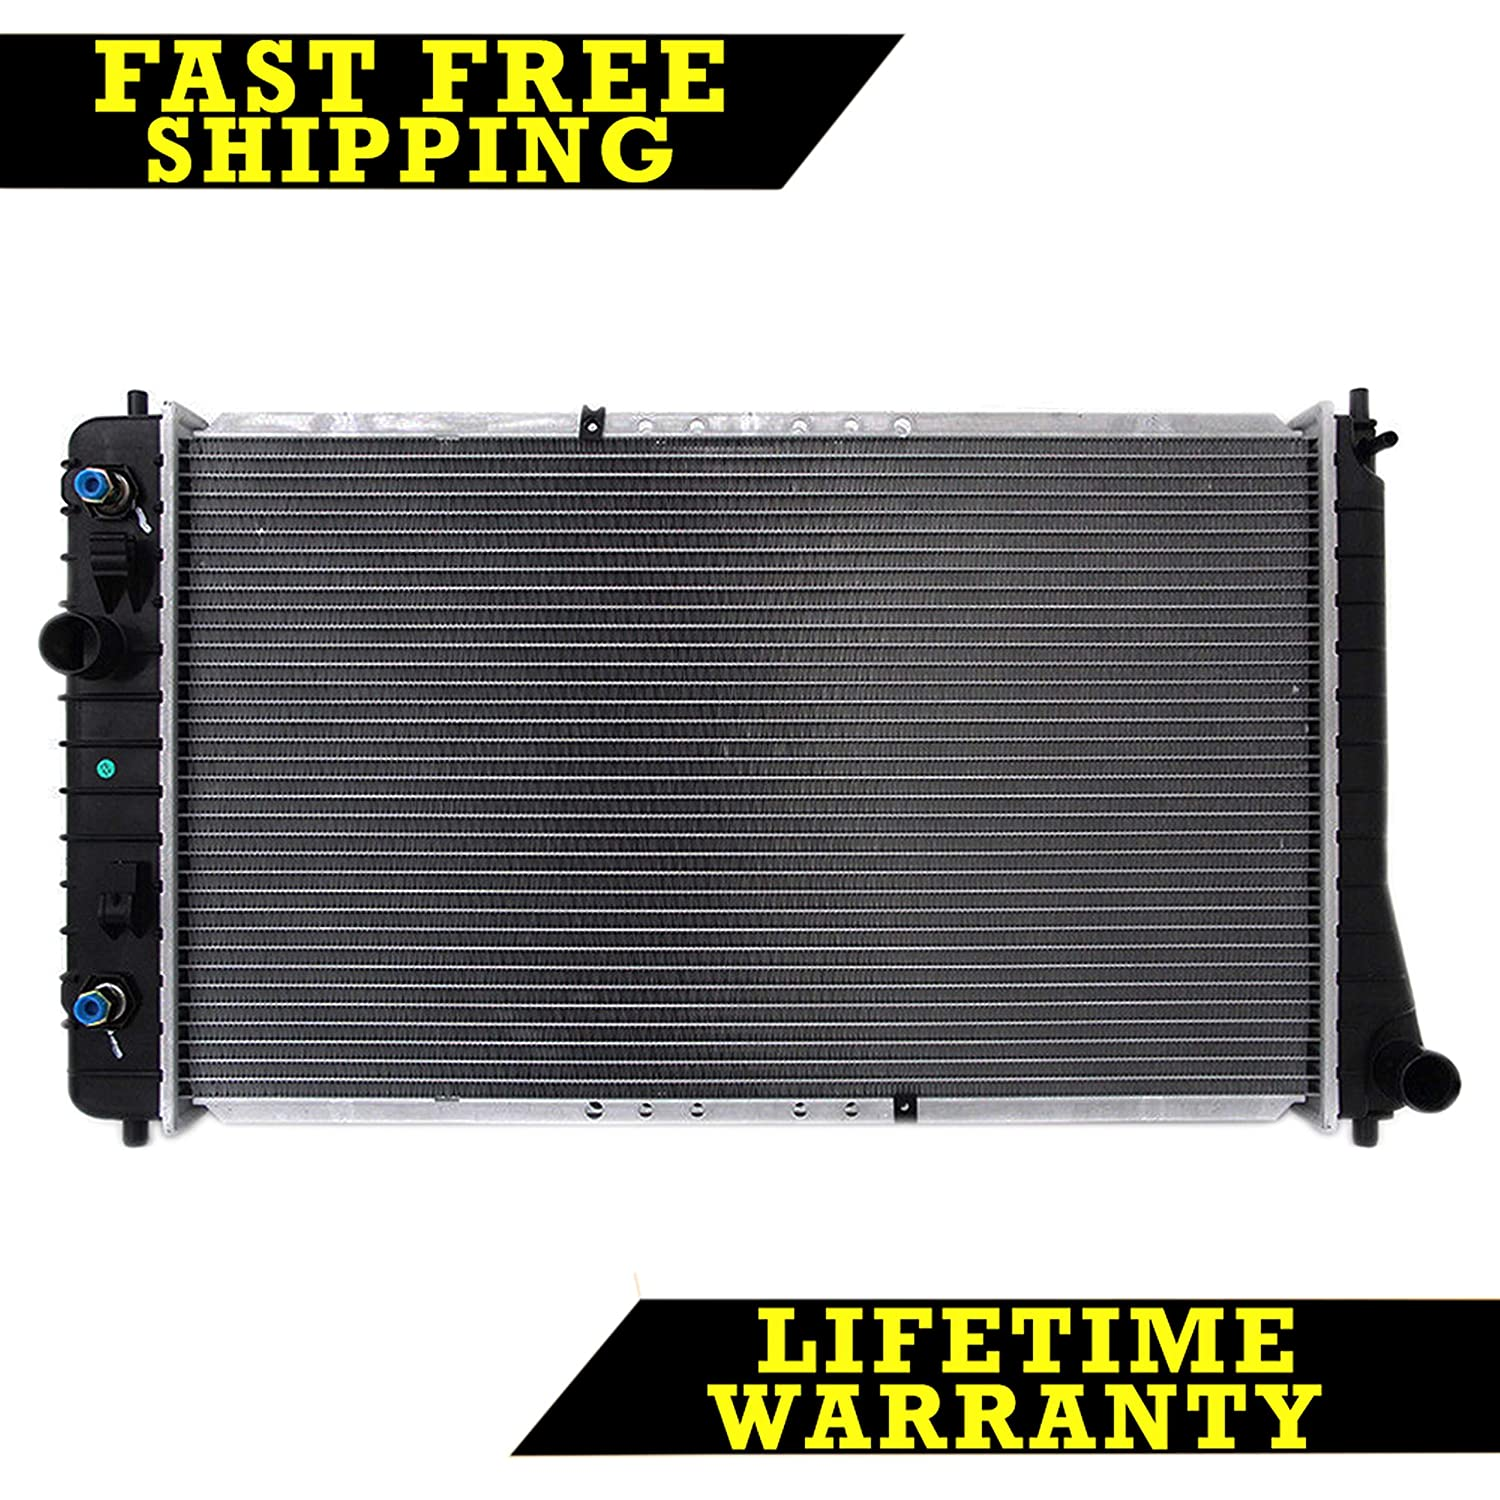 Amazon.com: RADIATOR FOR PONTIAC CHEVY FITS CAVALIER SUNFIRE 2.2 2.4 2.3 L4  4CYL 1687: Automotive